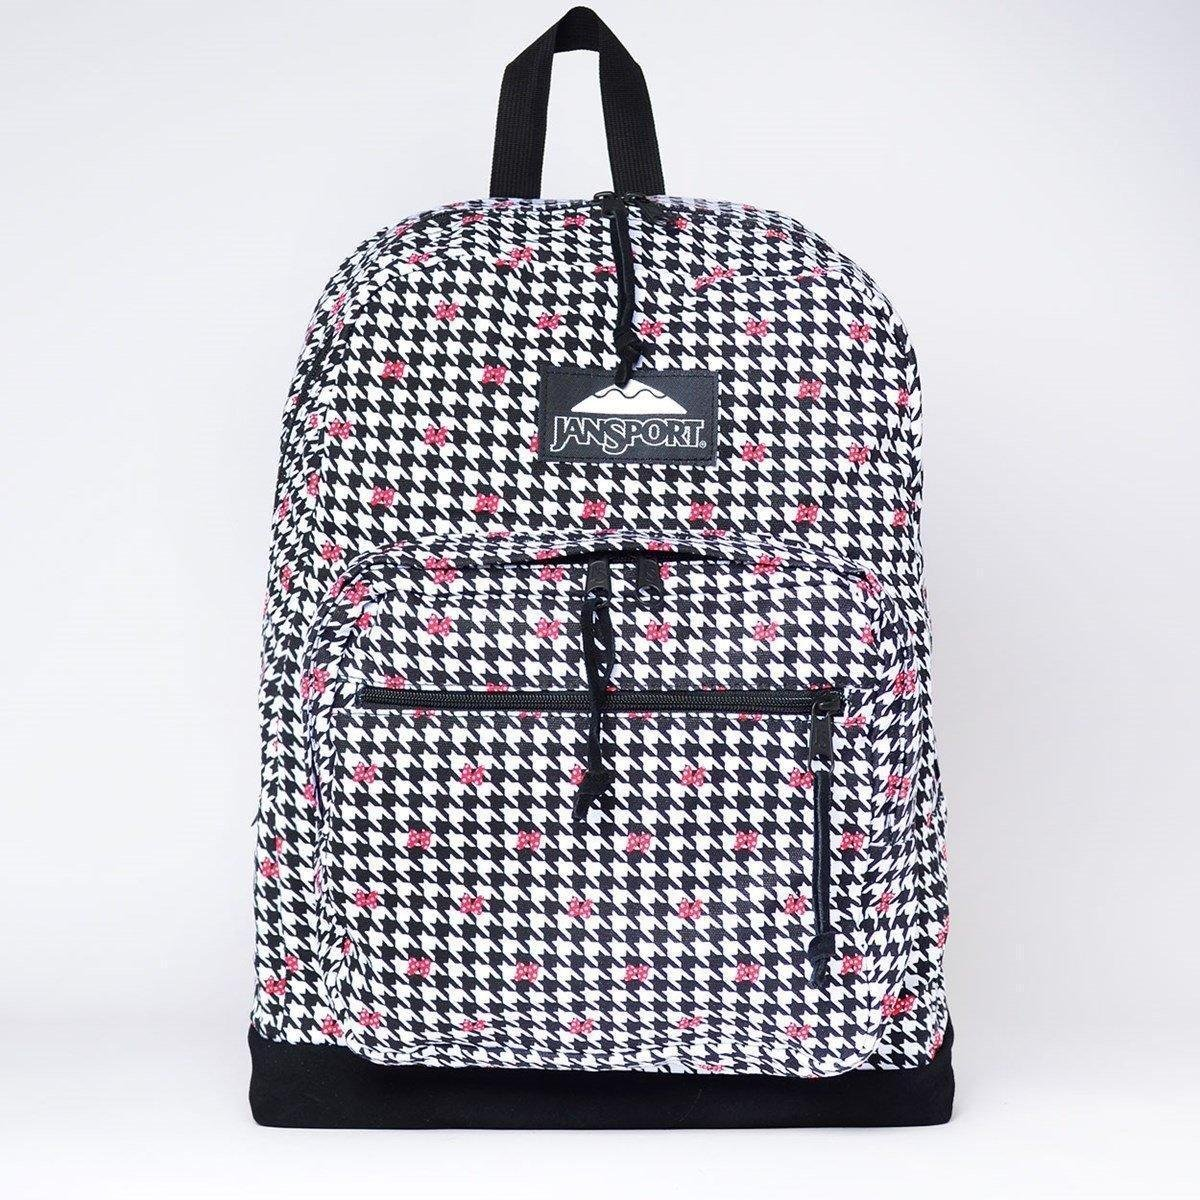 7e958baa2383d Mochila JanSport Right Pack Se Disney Minnie - Compre Agora